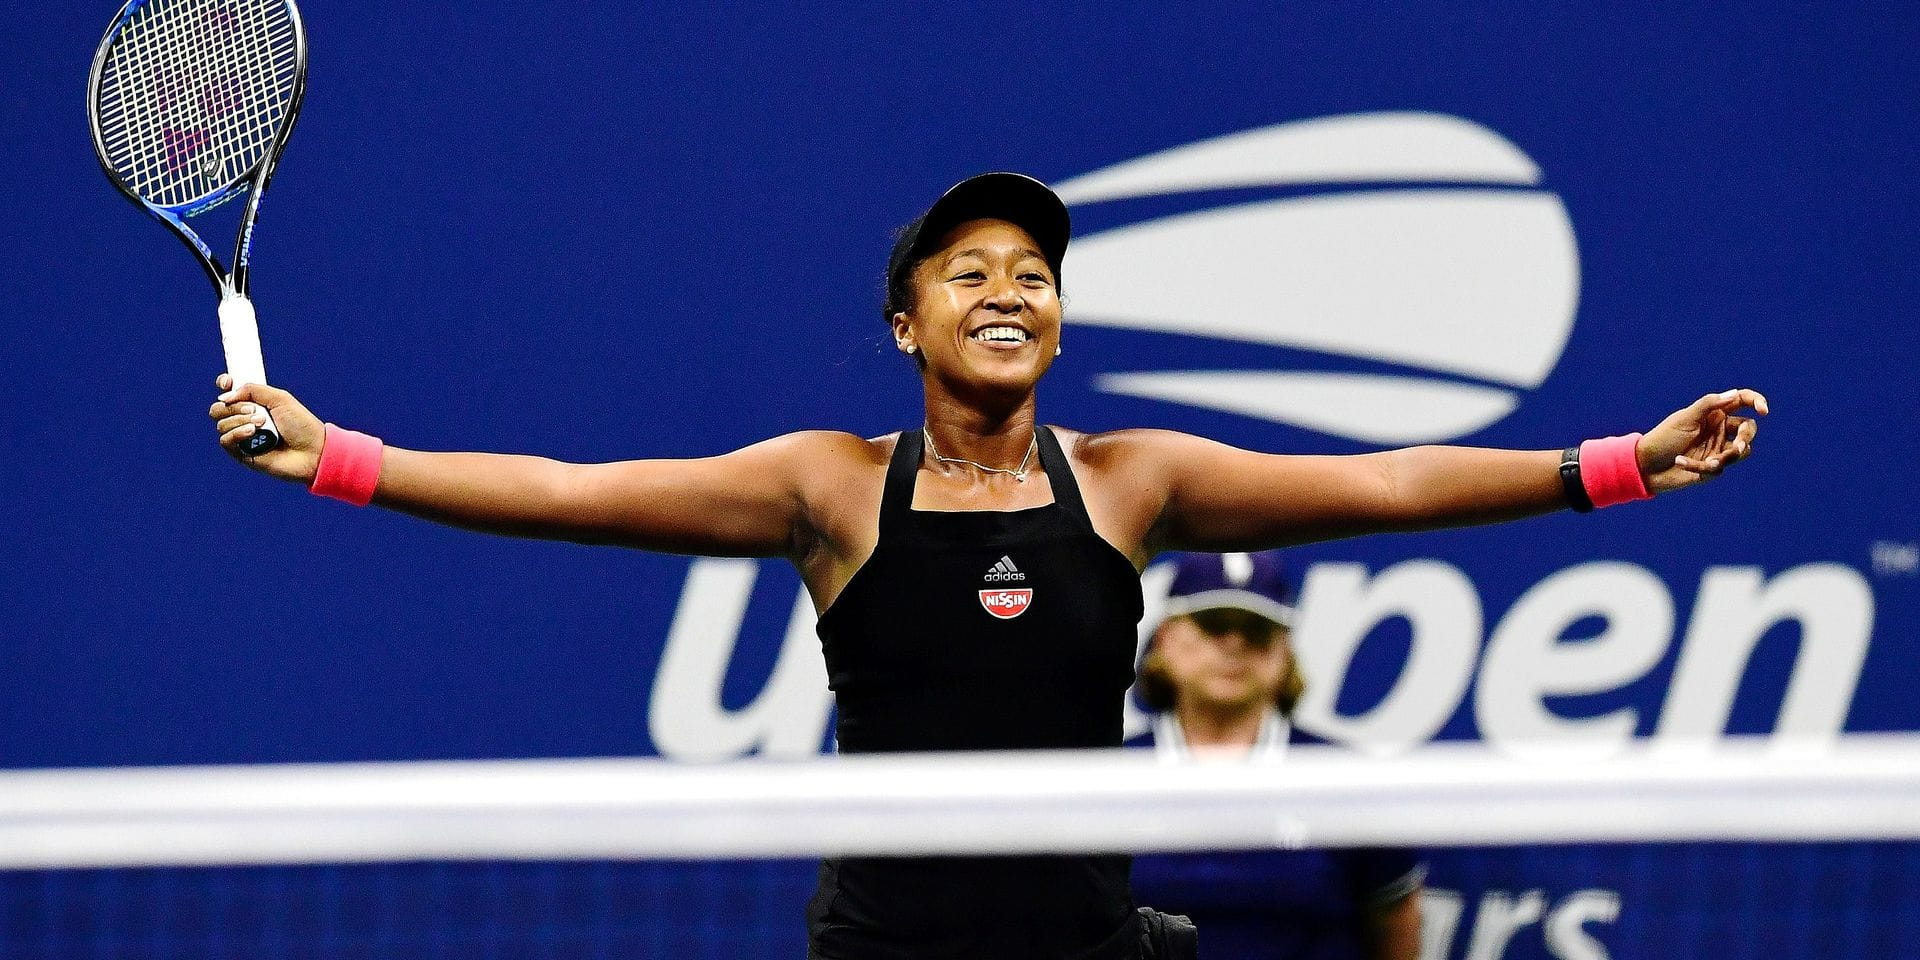 NEW YORK, NY - SEPTEMBER 06: Naomi Osaka of Japan celebrates victory following her women's singles semi-final match against Madison Keys of the United States on Day Eleven of the 2018 US Open at the USTA Billie Jean King National Tennis Center on September 6, 2018 in the Flushing neighborhood of the Queens borough of New York City. Sarah Stier/Getty Images/AFP == FOR NEWSPAPERS, INTERNET, TELCOS & TELEVISION USE ONLY ==